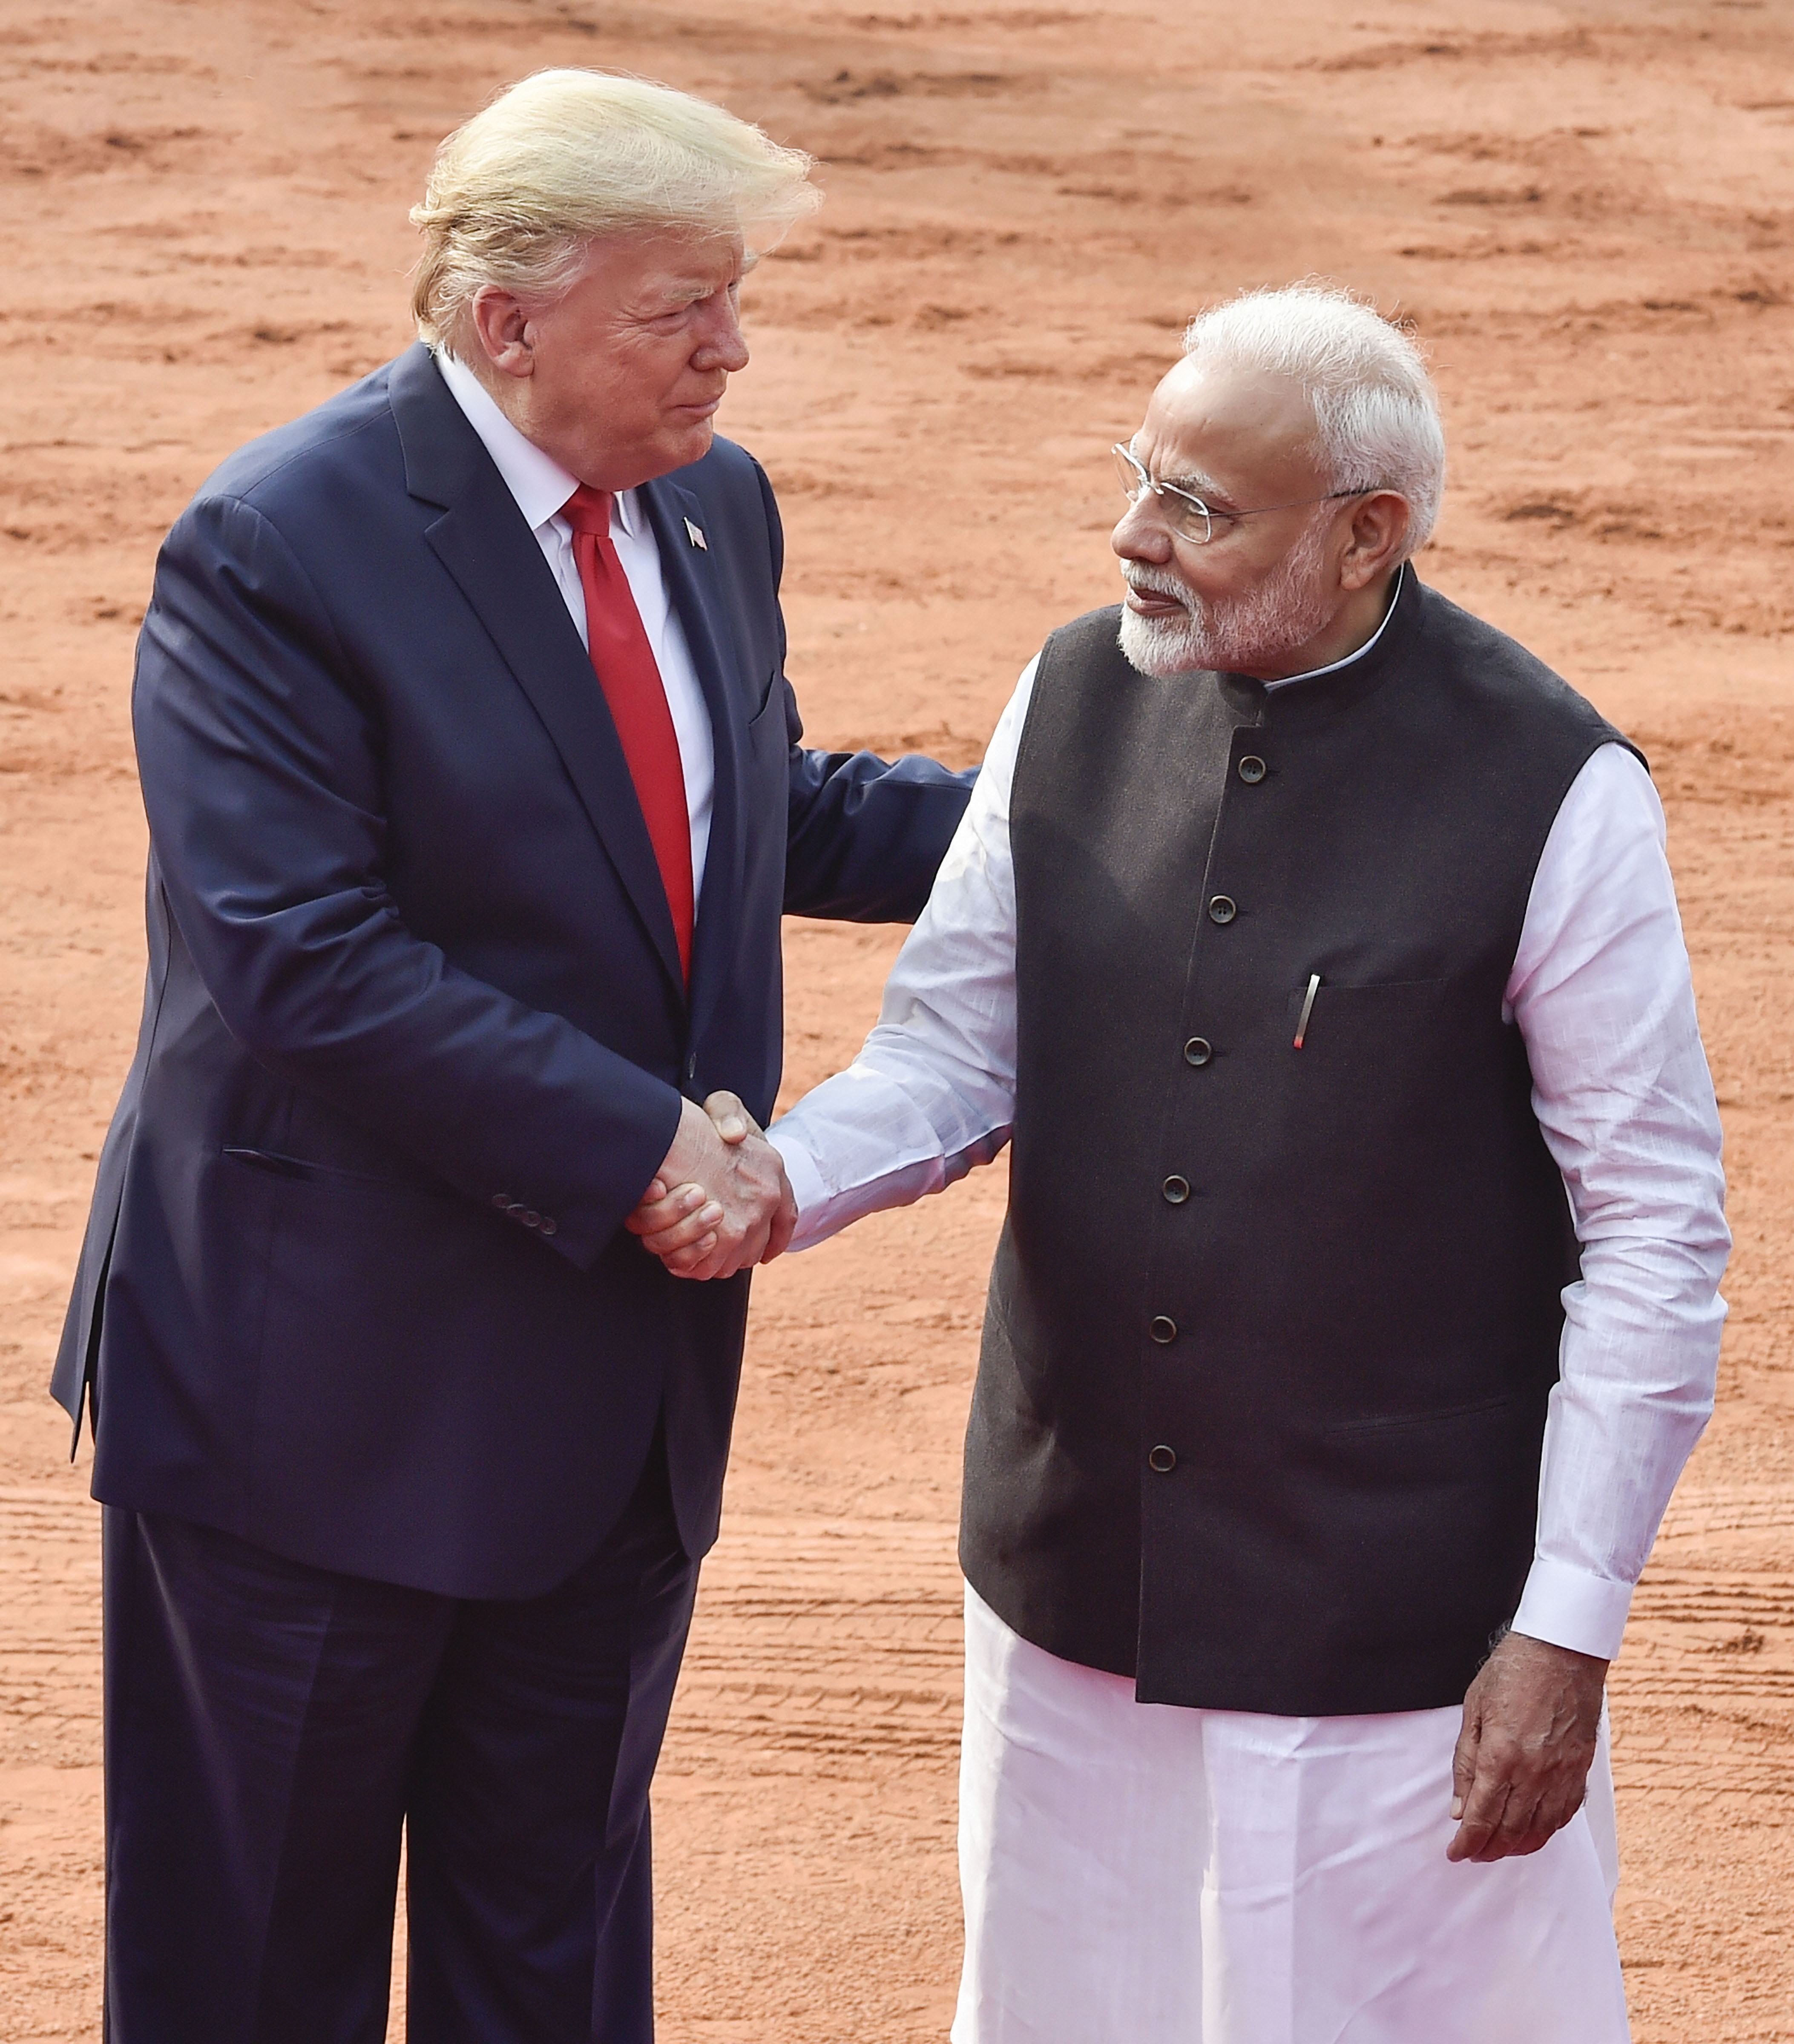 US President Donald Trump shakes hands with Prime Minister Narendra Modi during a ceremonial reception at Rashtrapati Bhavan in New Delhi, Tuesday, February 25, 2020